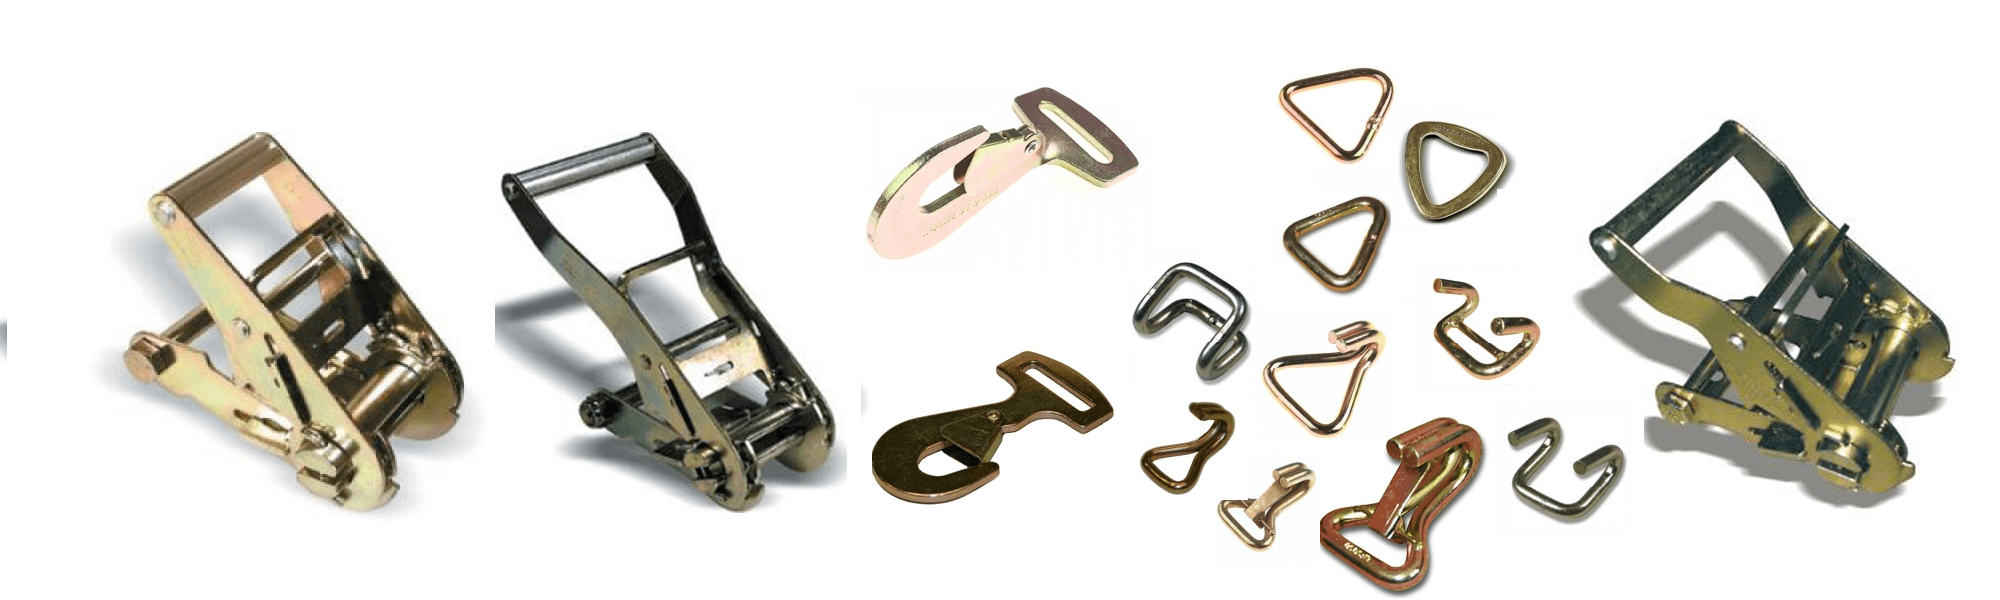 ratchet strap fittings